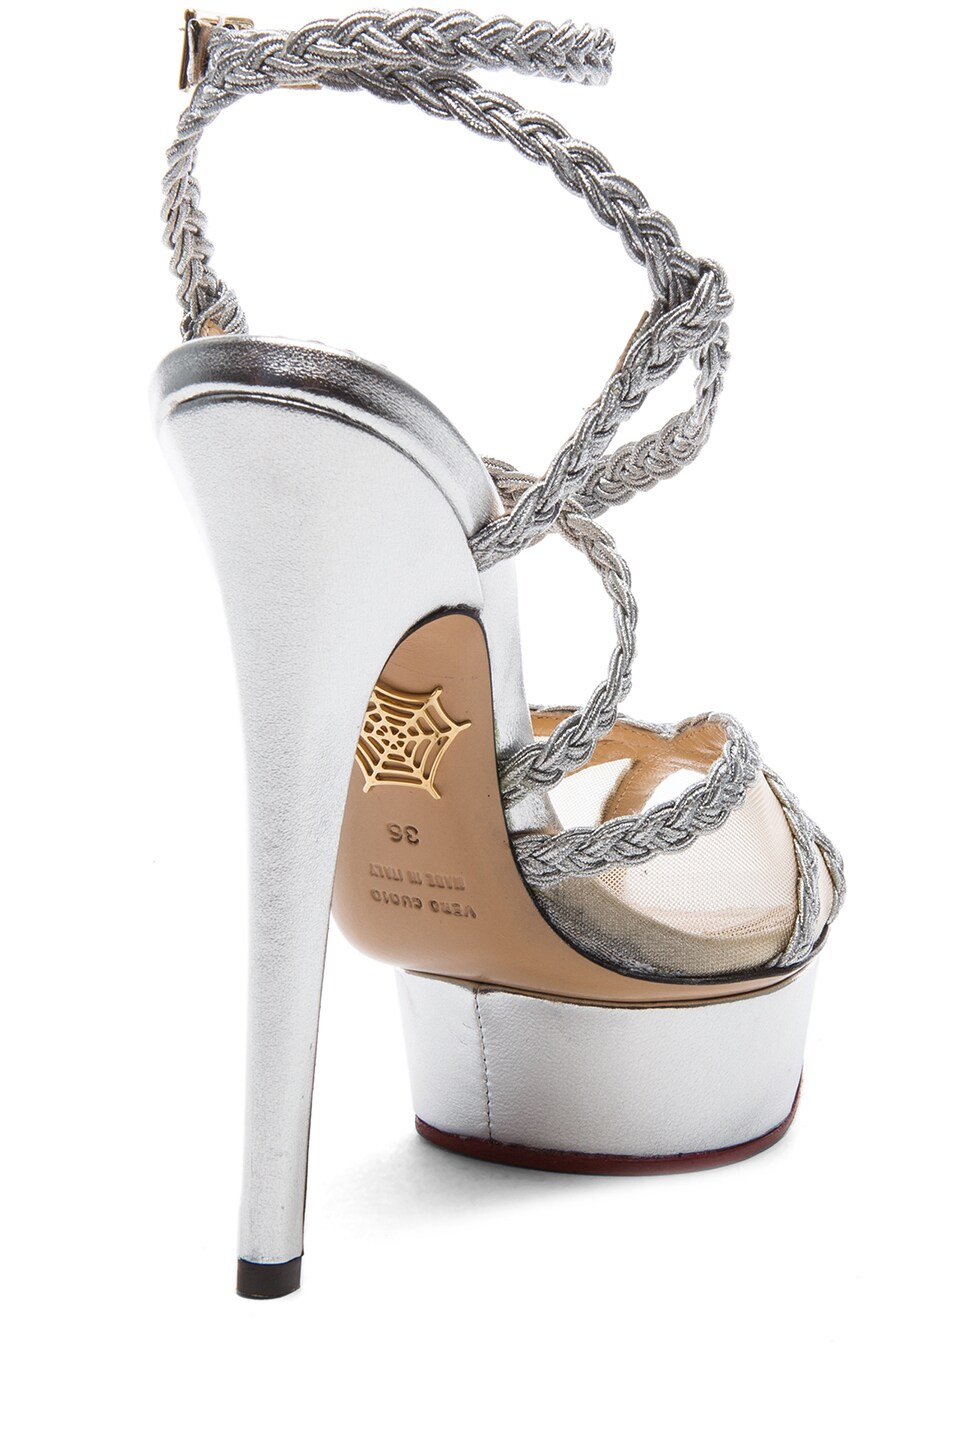 Image 3 of Charlotte Olympia Isadora Metallic Nappa Leather Heel in Silver